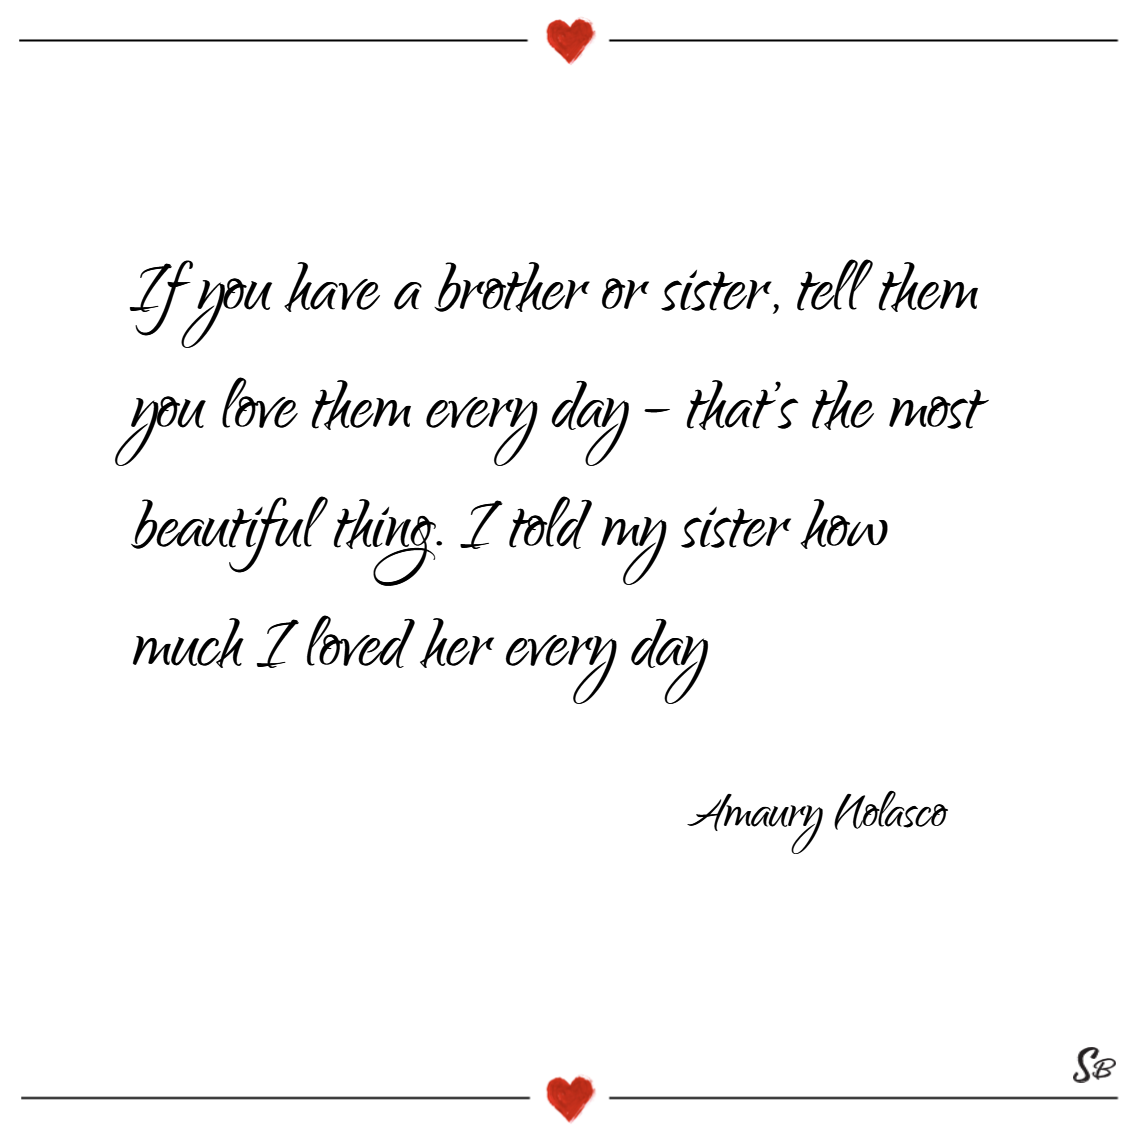 If you have a brother or sister, tell them you love them every day – that's the most beautiful thing. i told my sister how much i loved her every day. – amaury nolasco